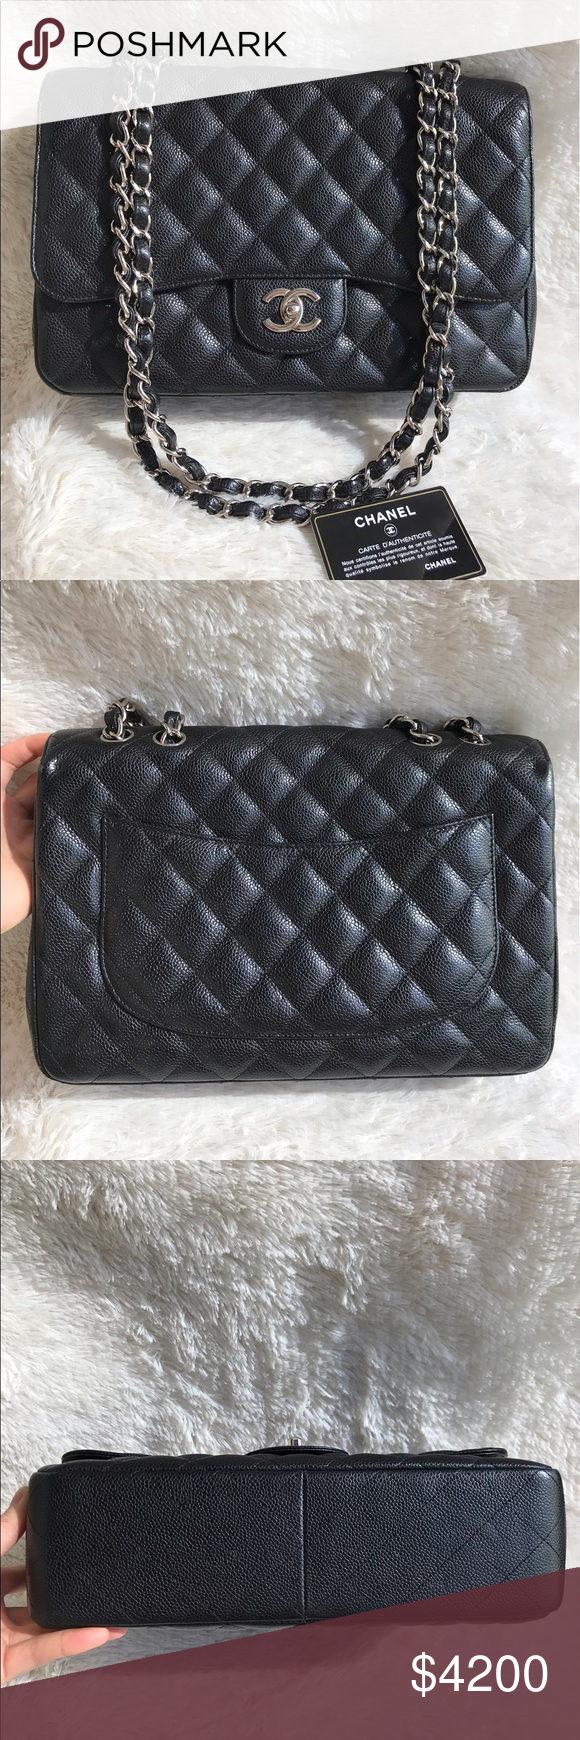 6dd6c2e4e7fd Sold-Authentic Chanel CF Jumbo SF Black Caviar Classic Flap Jumbo in Single  Flap, discontinued model hence you can't get it from Chanel store anymore.